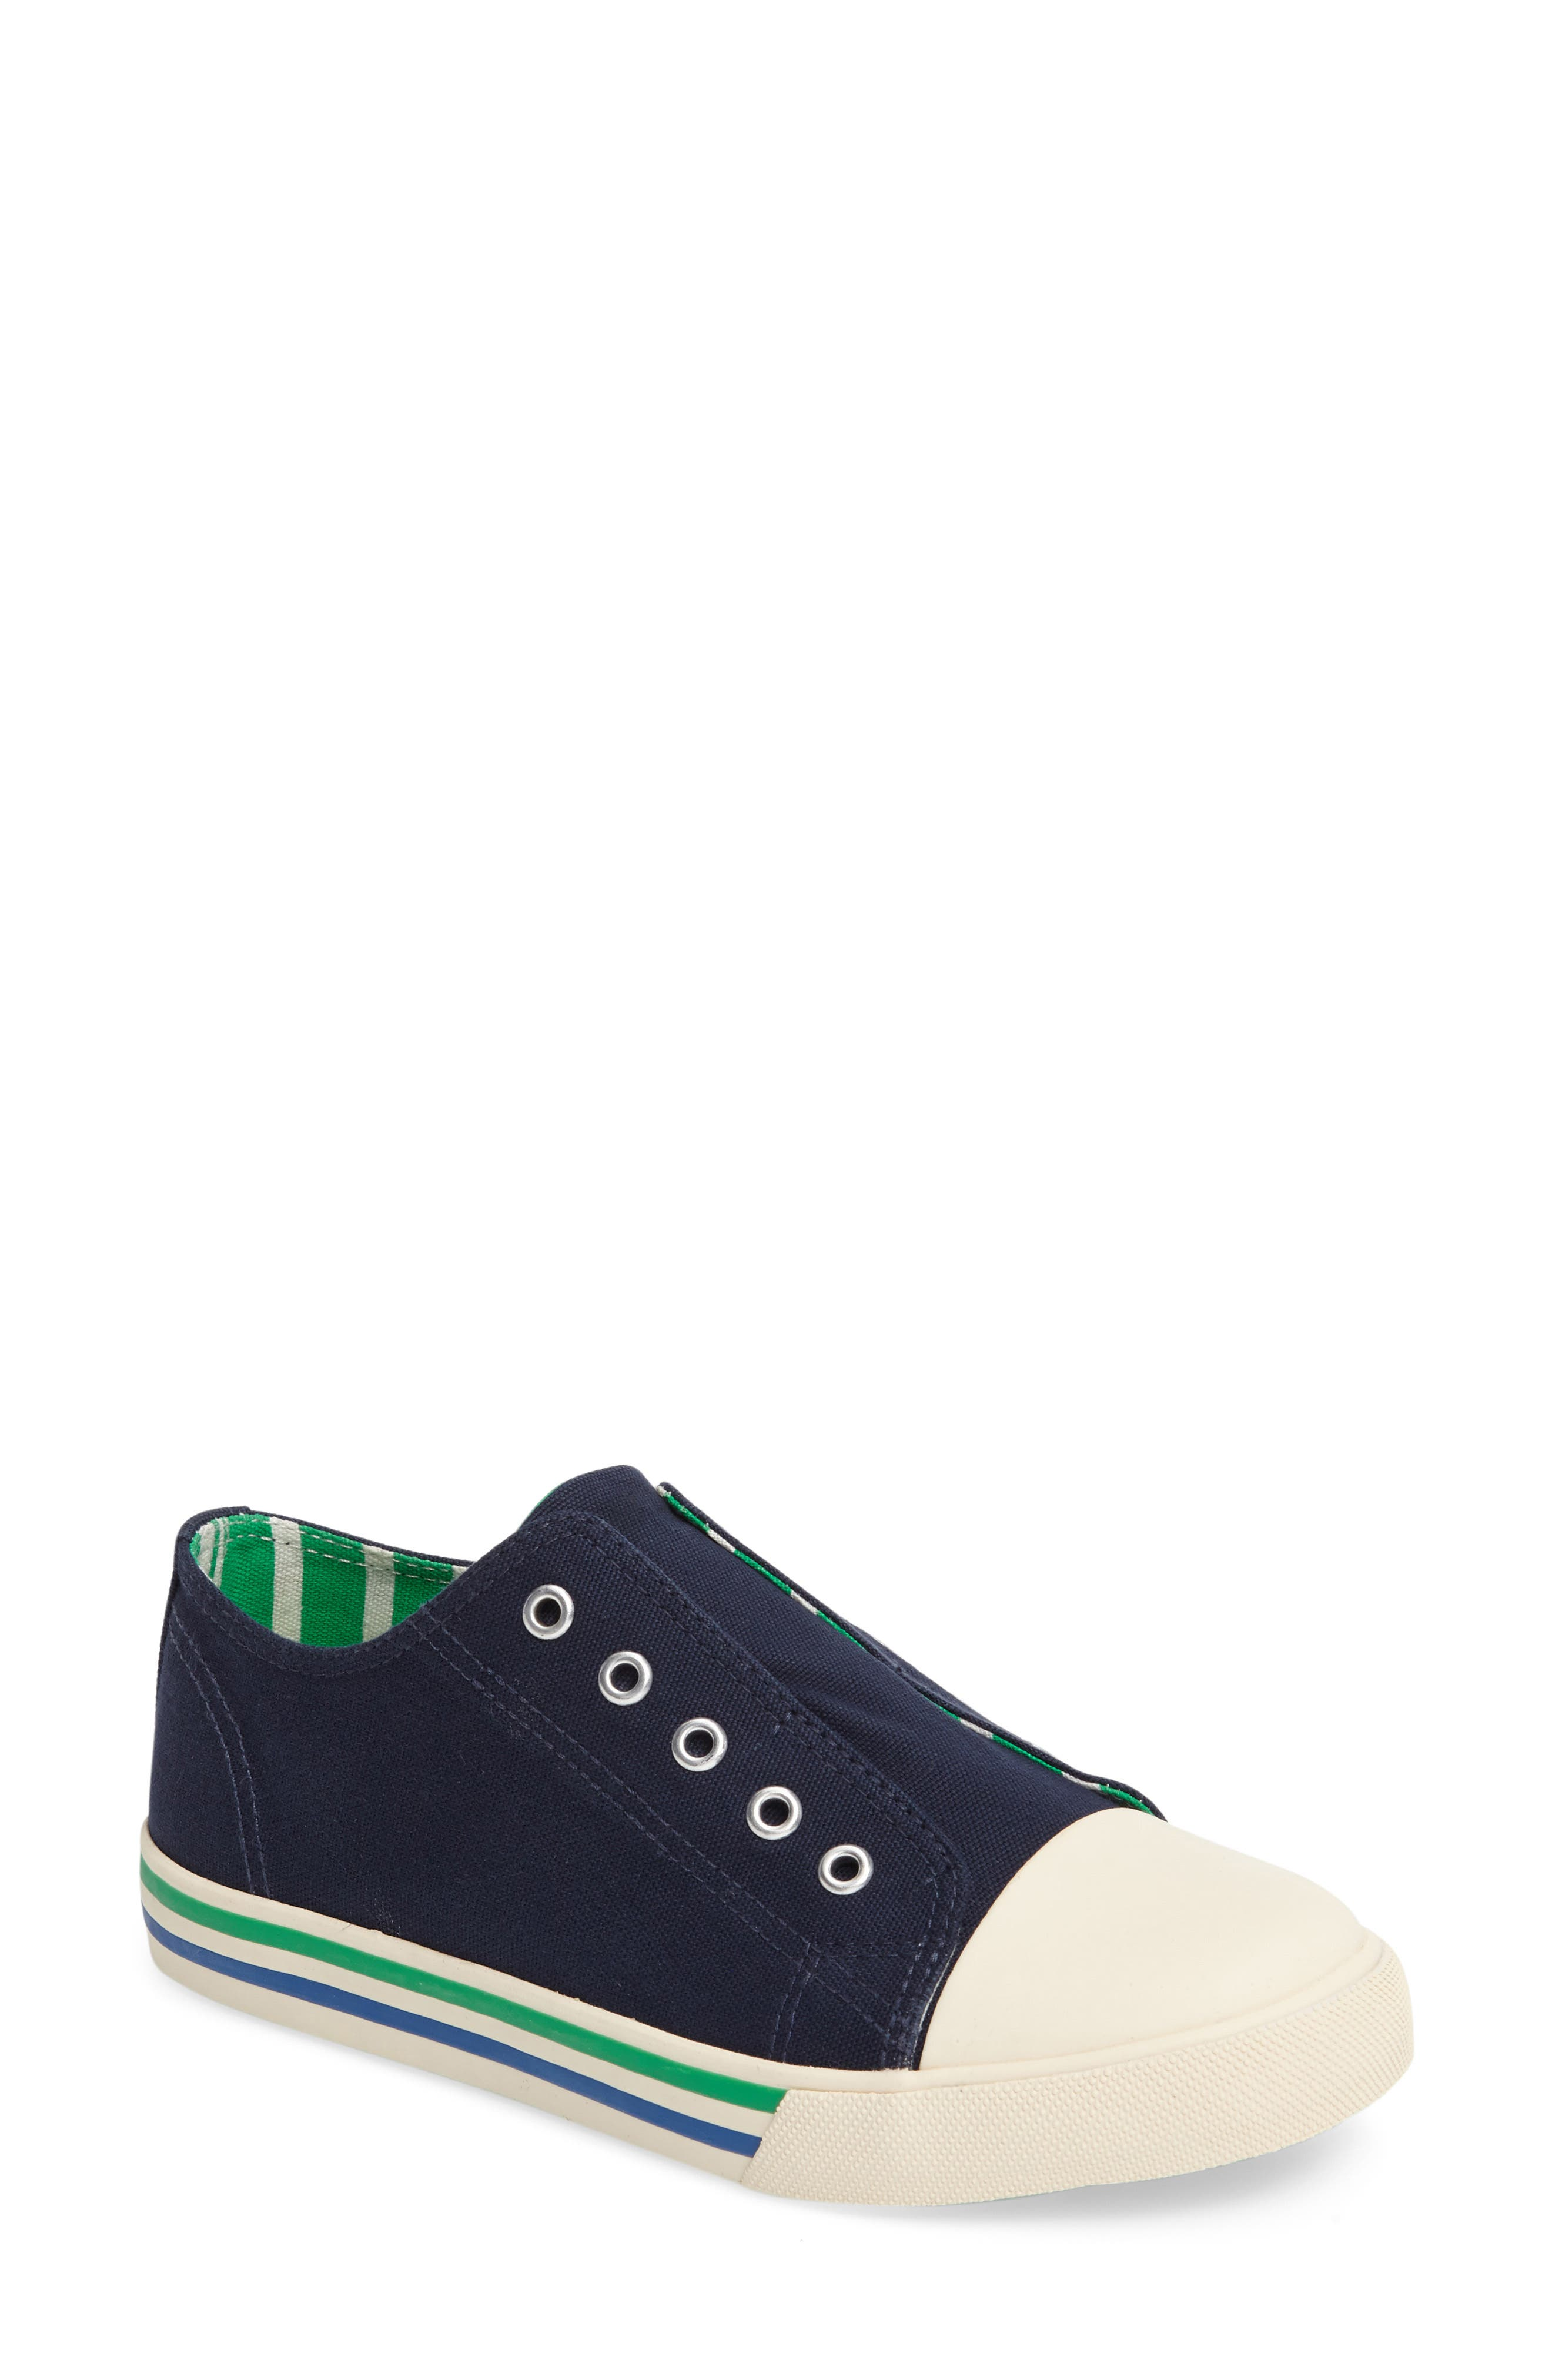 MINI BODEN Laceless Sneaker